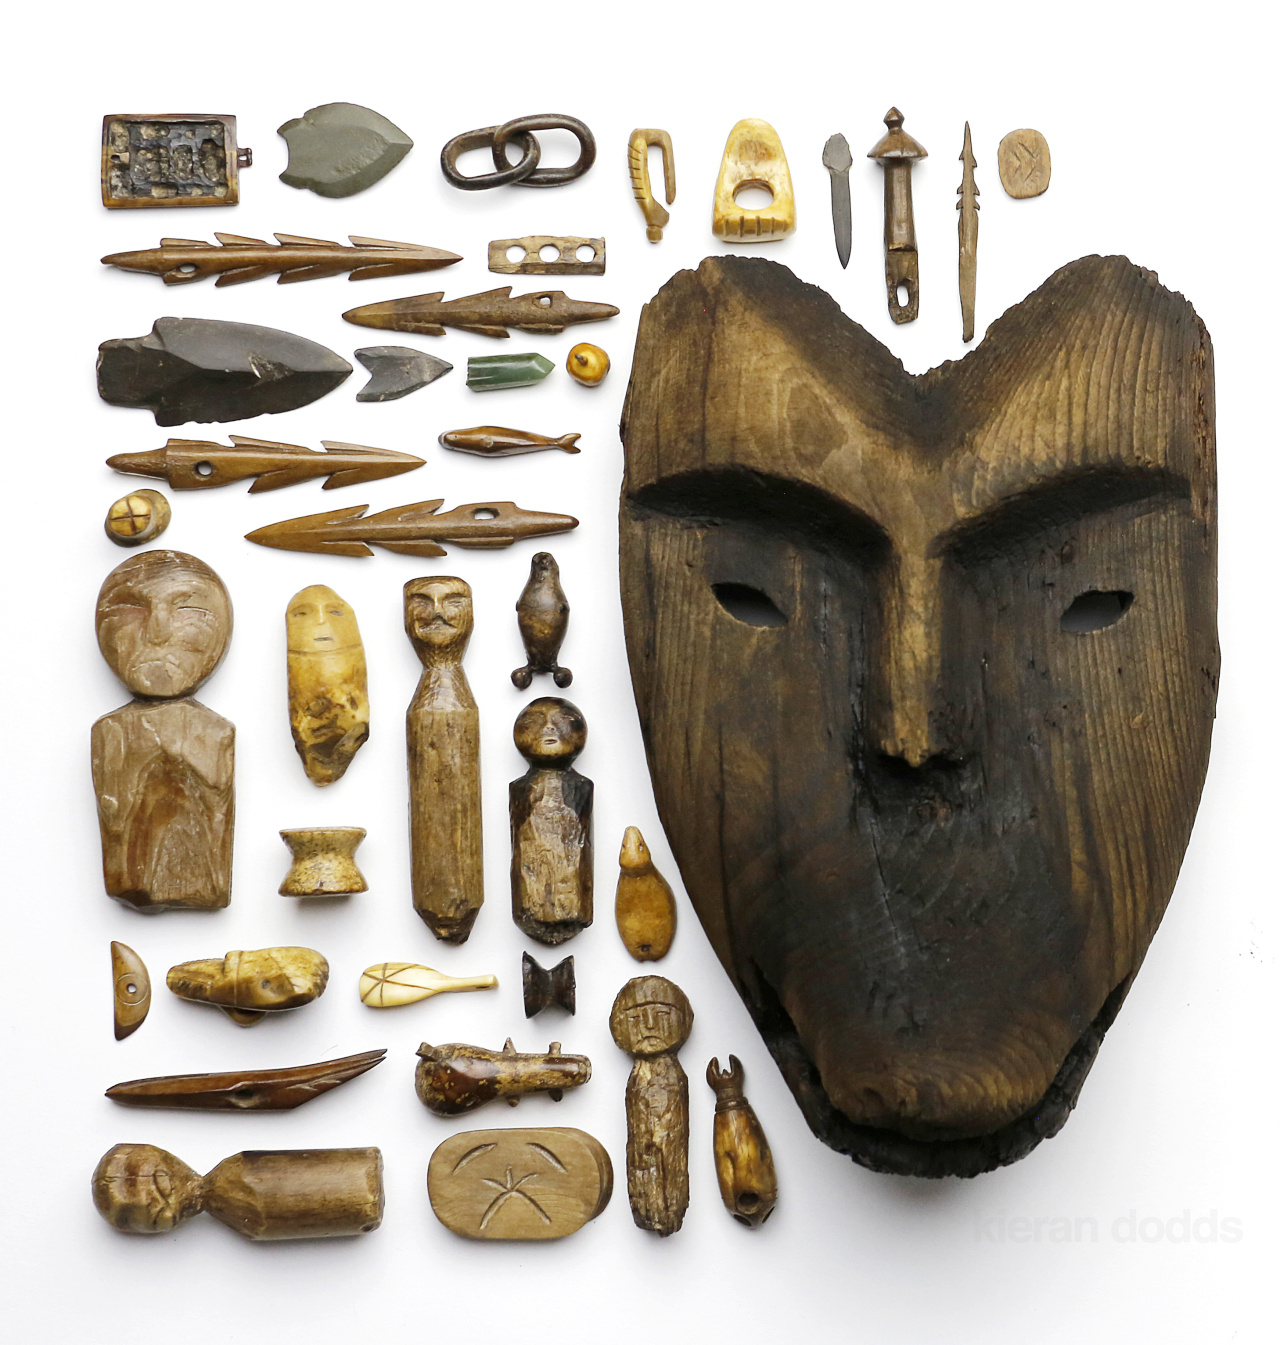 Kieran Dodds Eskimo artefacts for National Geographic, October 2014